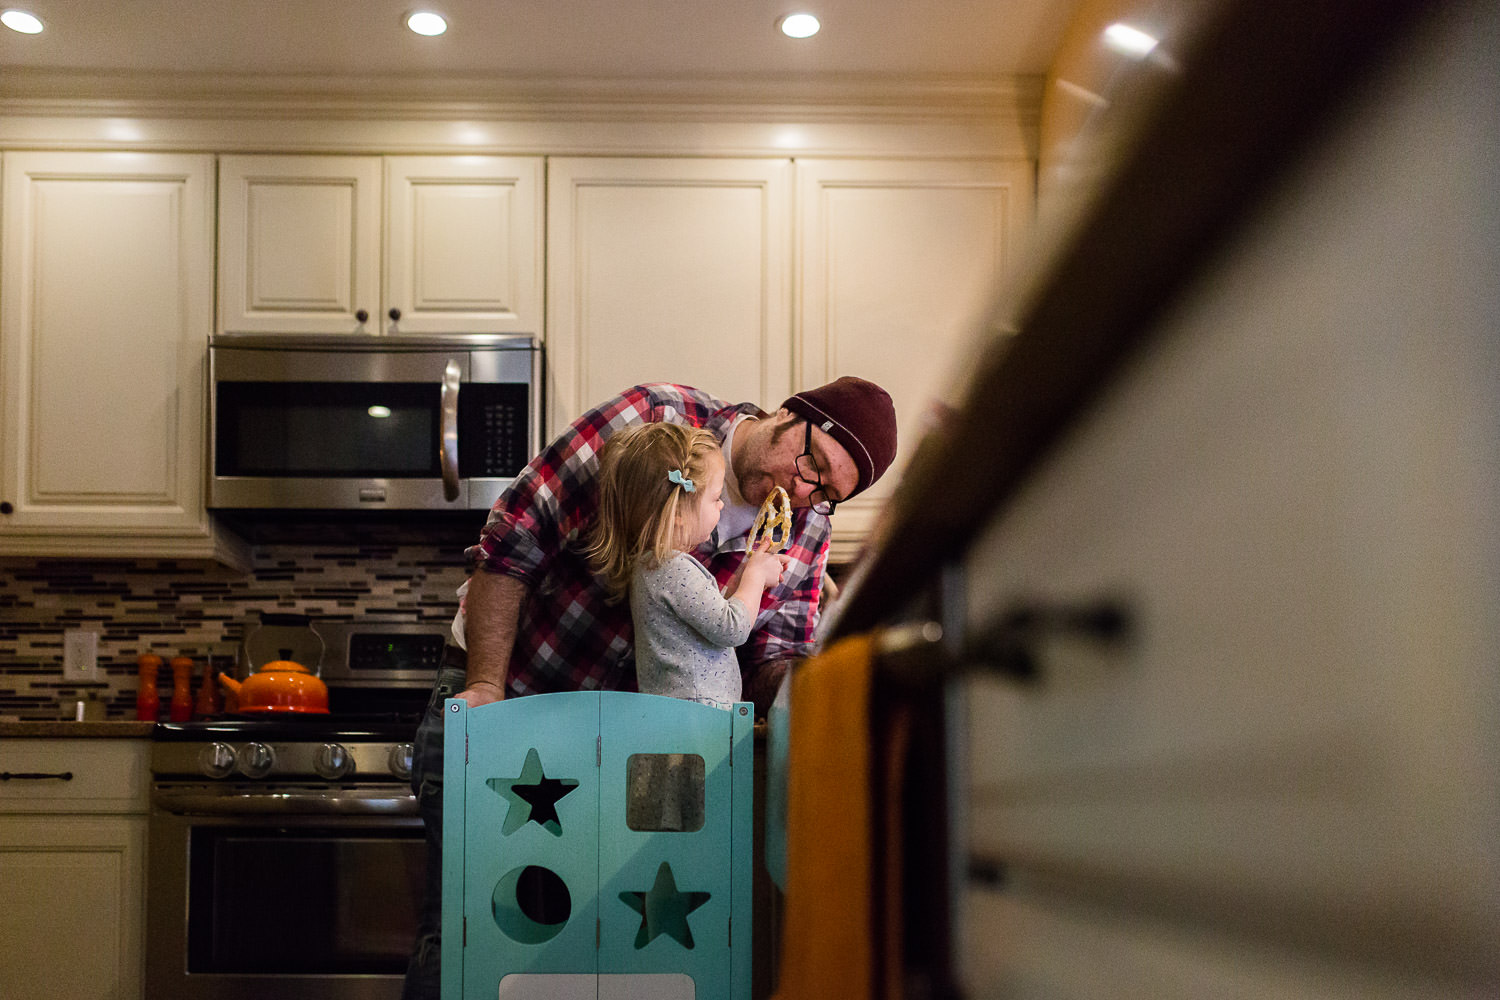 toddler girl sharing cookie dough with dad in kitchen